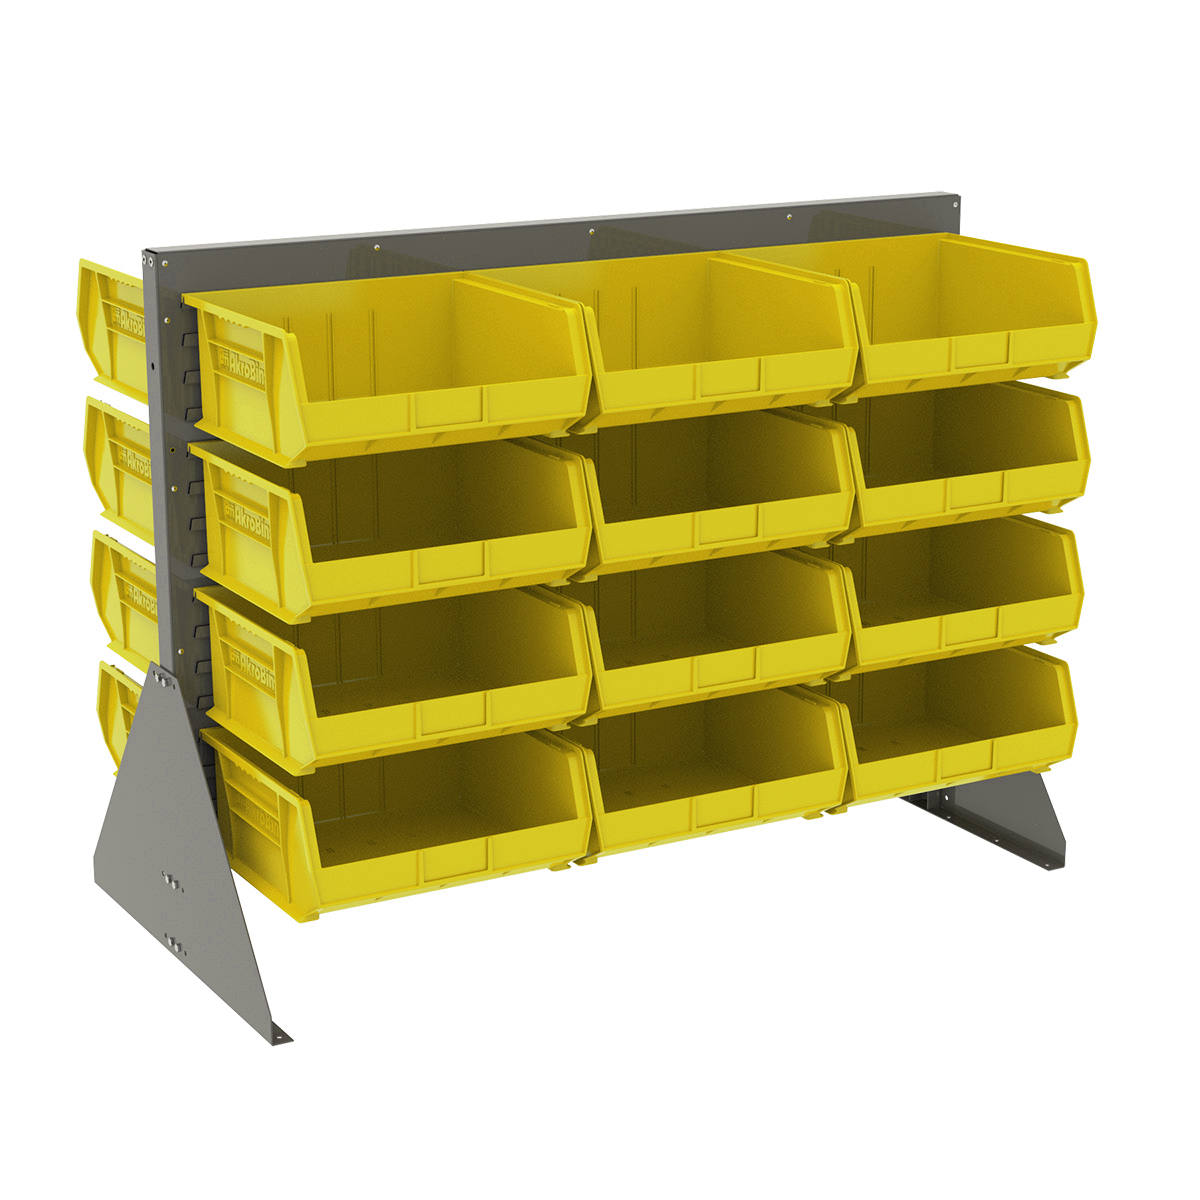 Item DISCONTINUED by Manufacturer.  Low Profile Floor Rack, 2-Sided w/ 24 AkroBins, Gray/Yellow (30607GY250Y).  This item sold in carton quantities of 1.